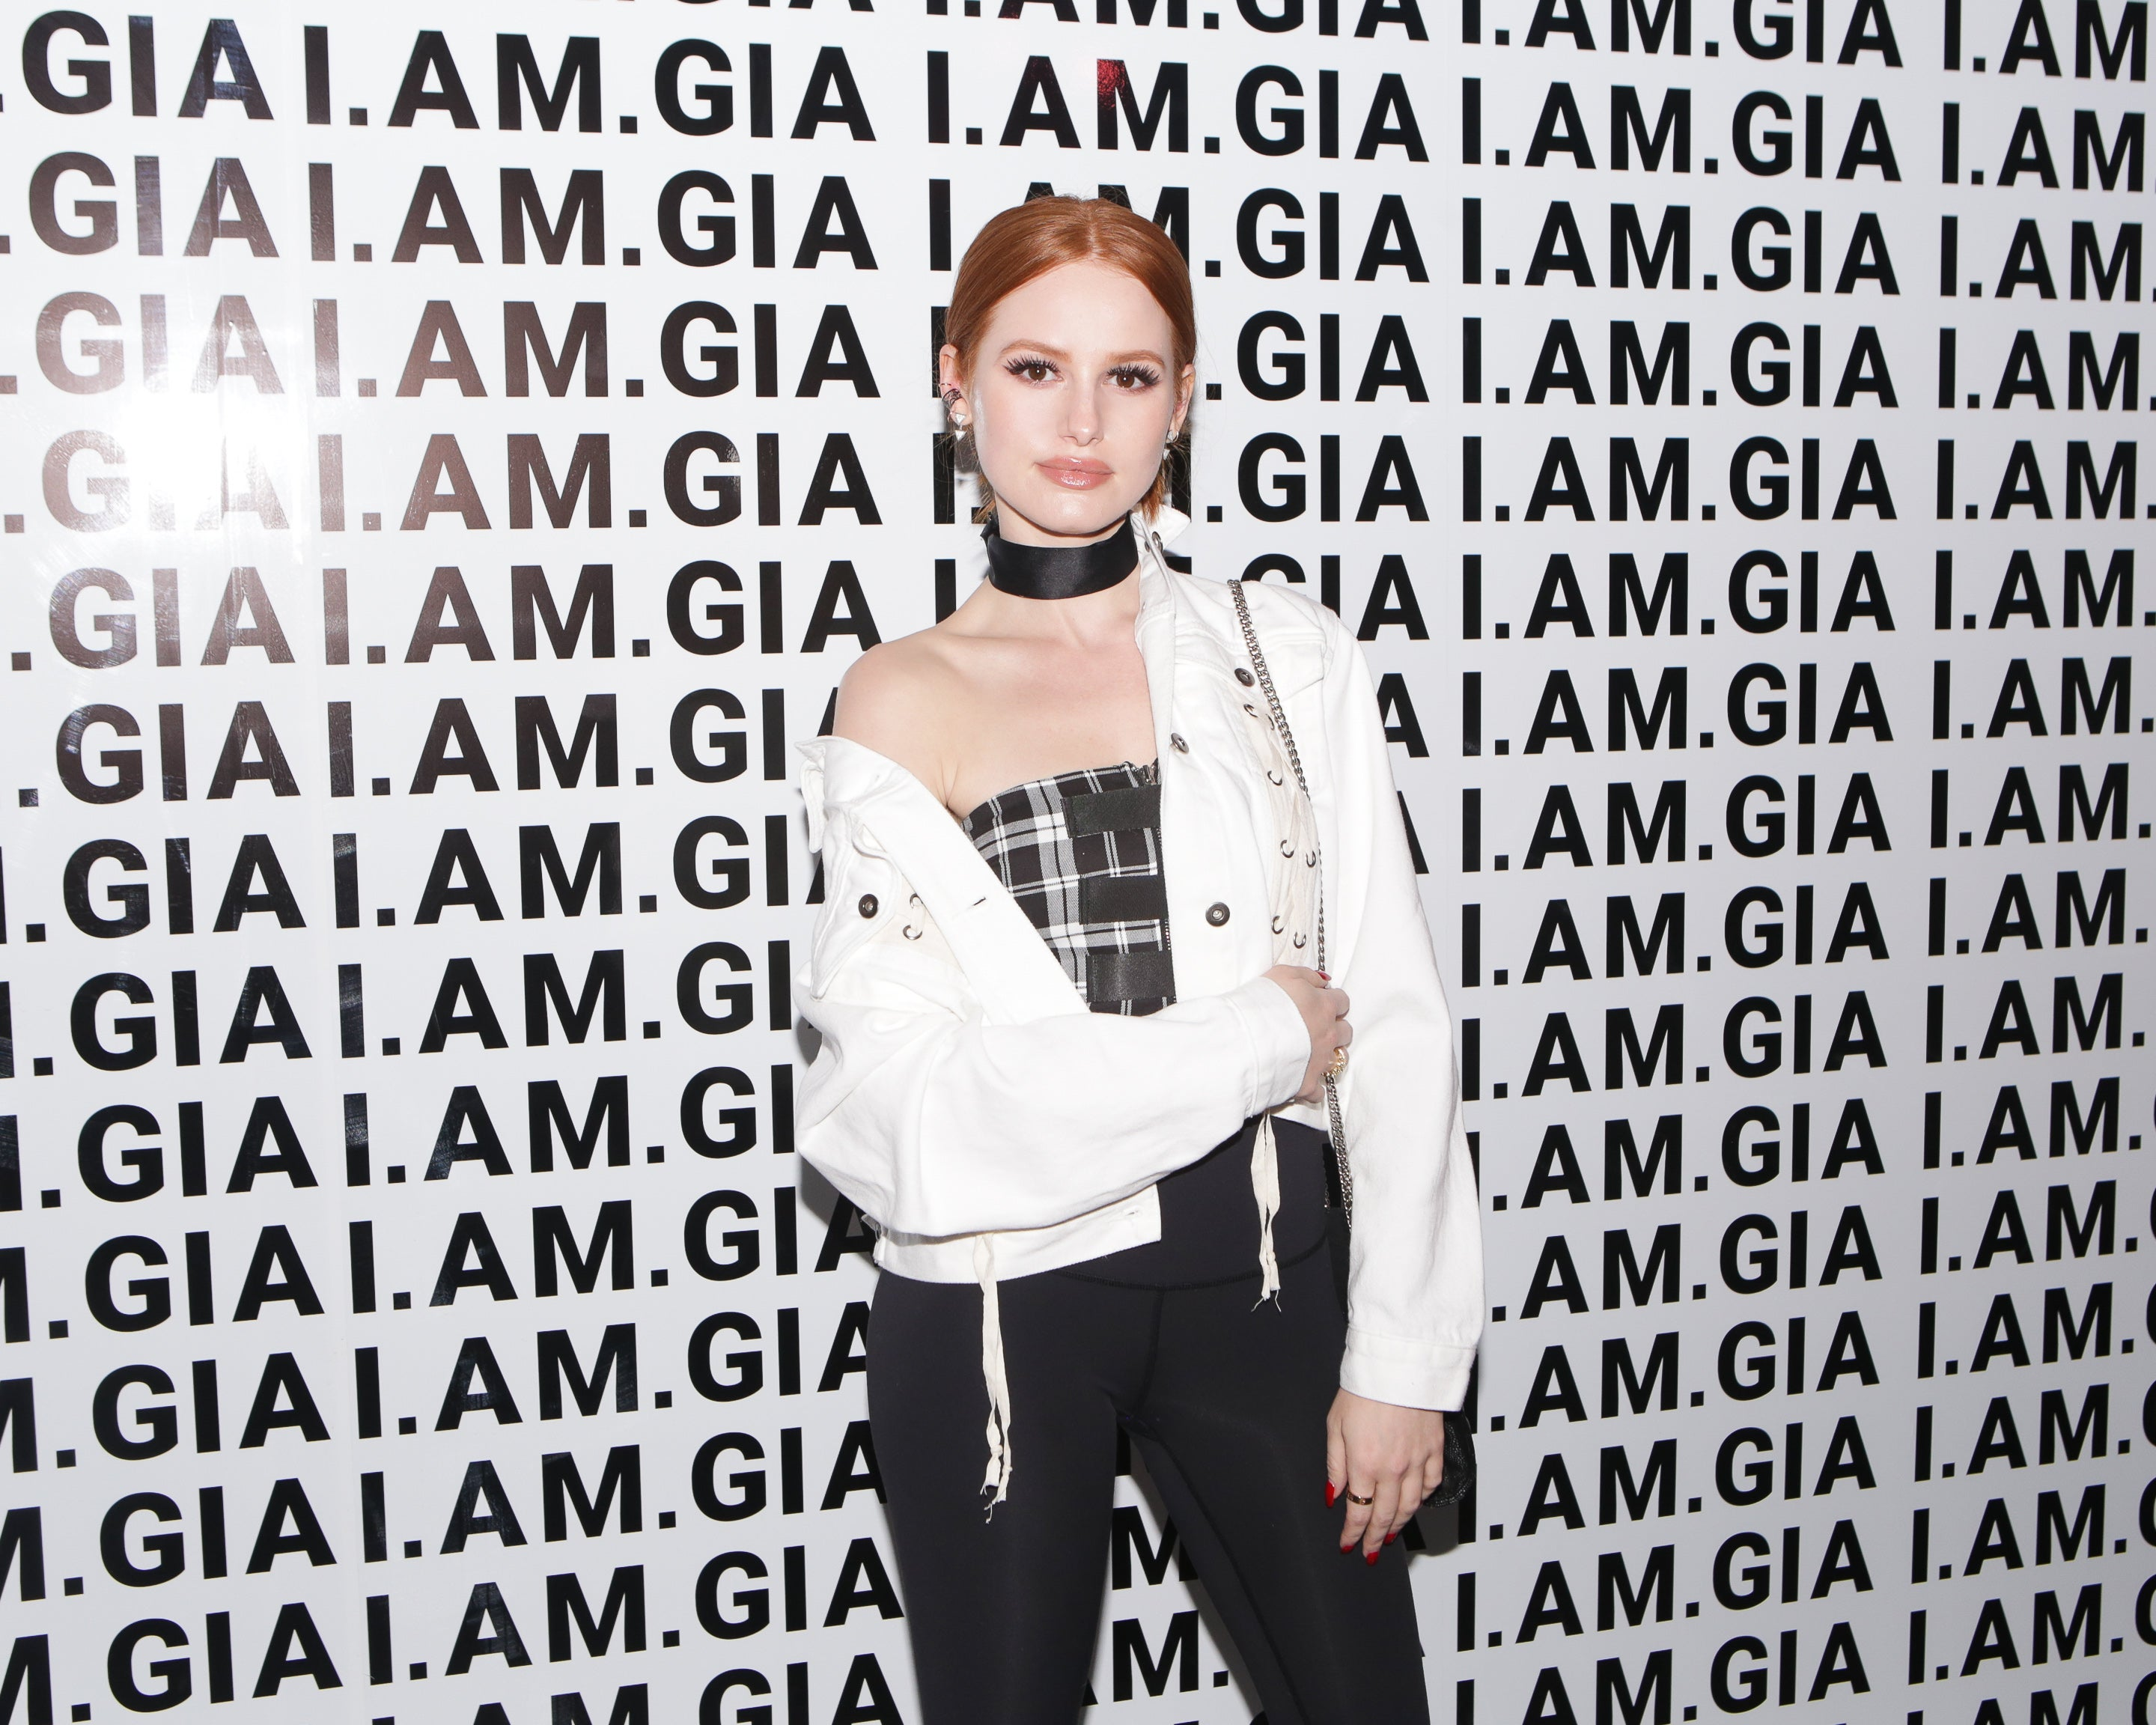 Madelaine Petsch at IAMGIA launch